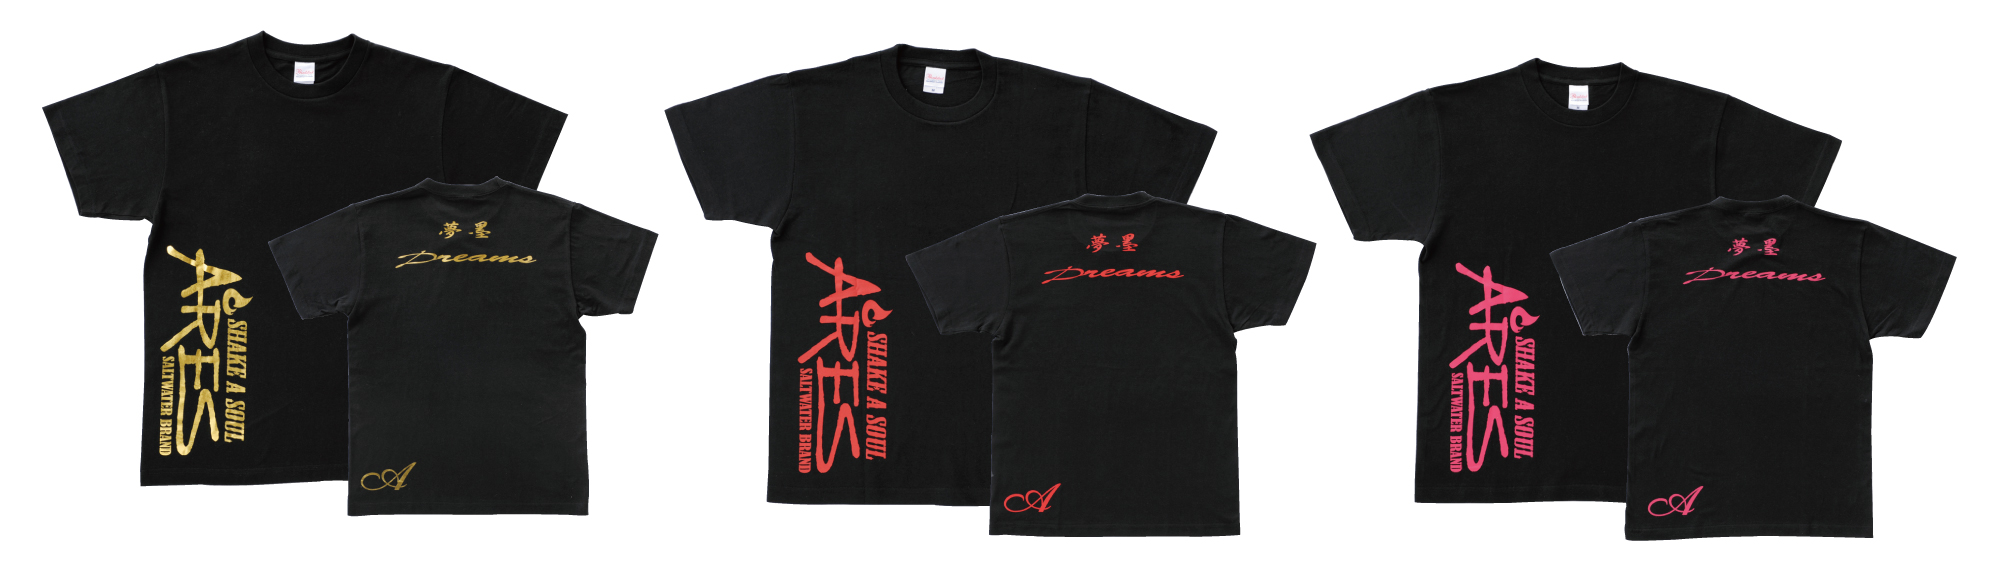 ARES Tシャツ